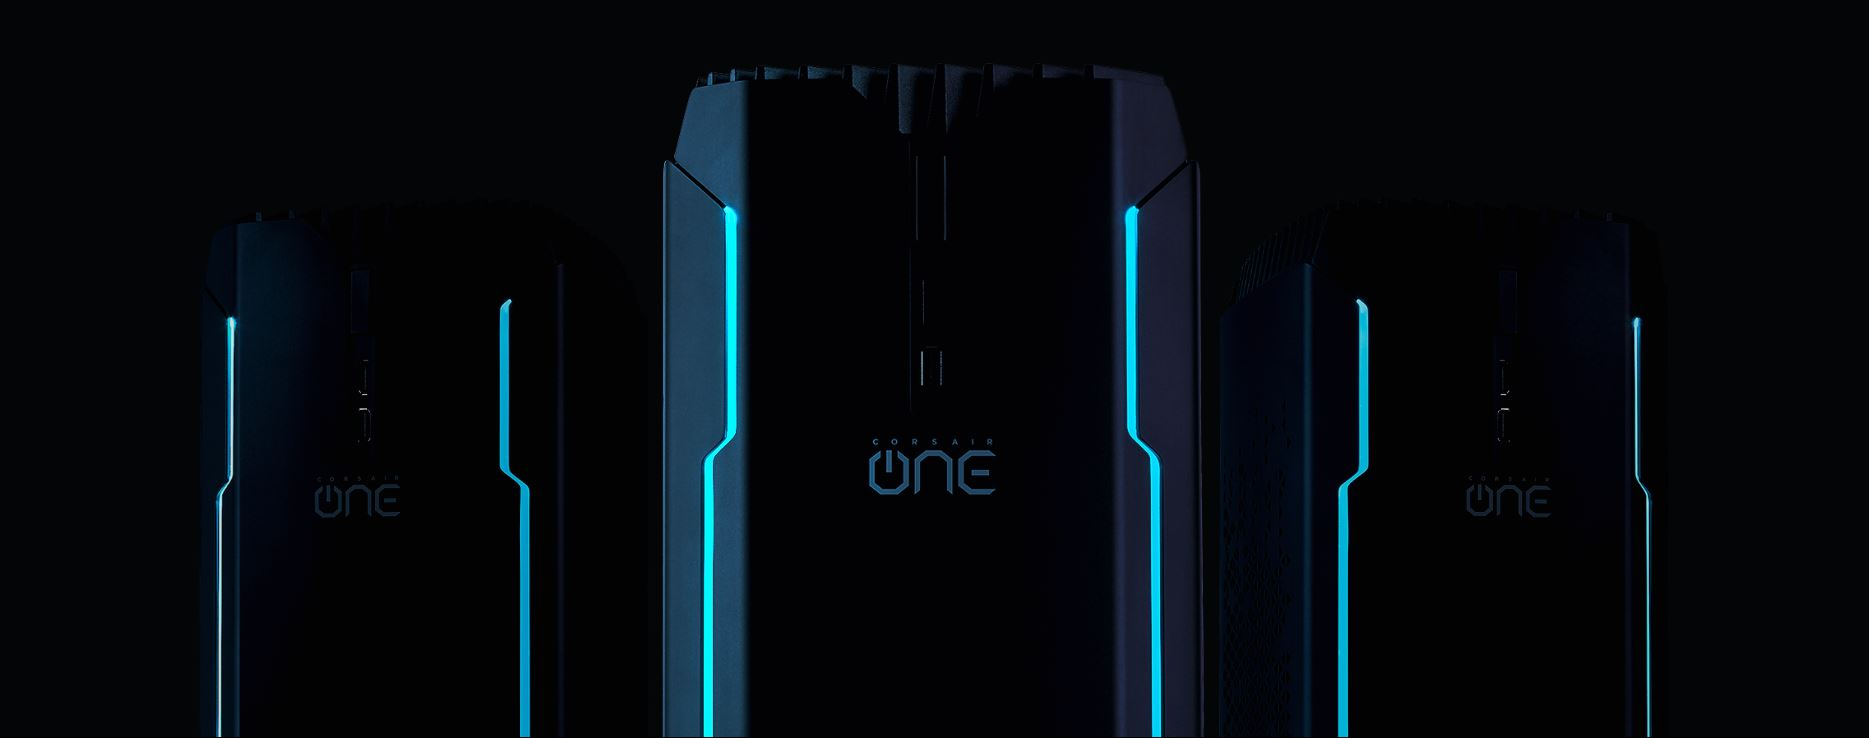 Corsair_one